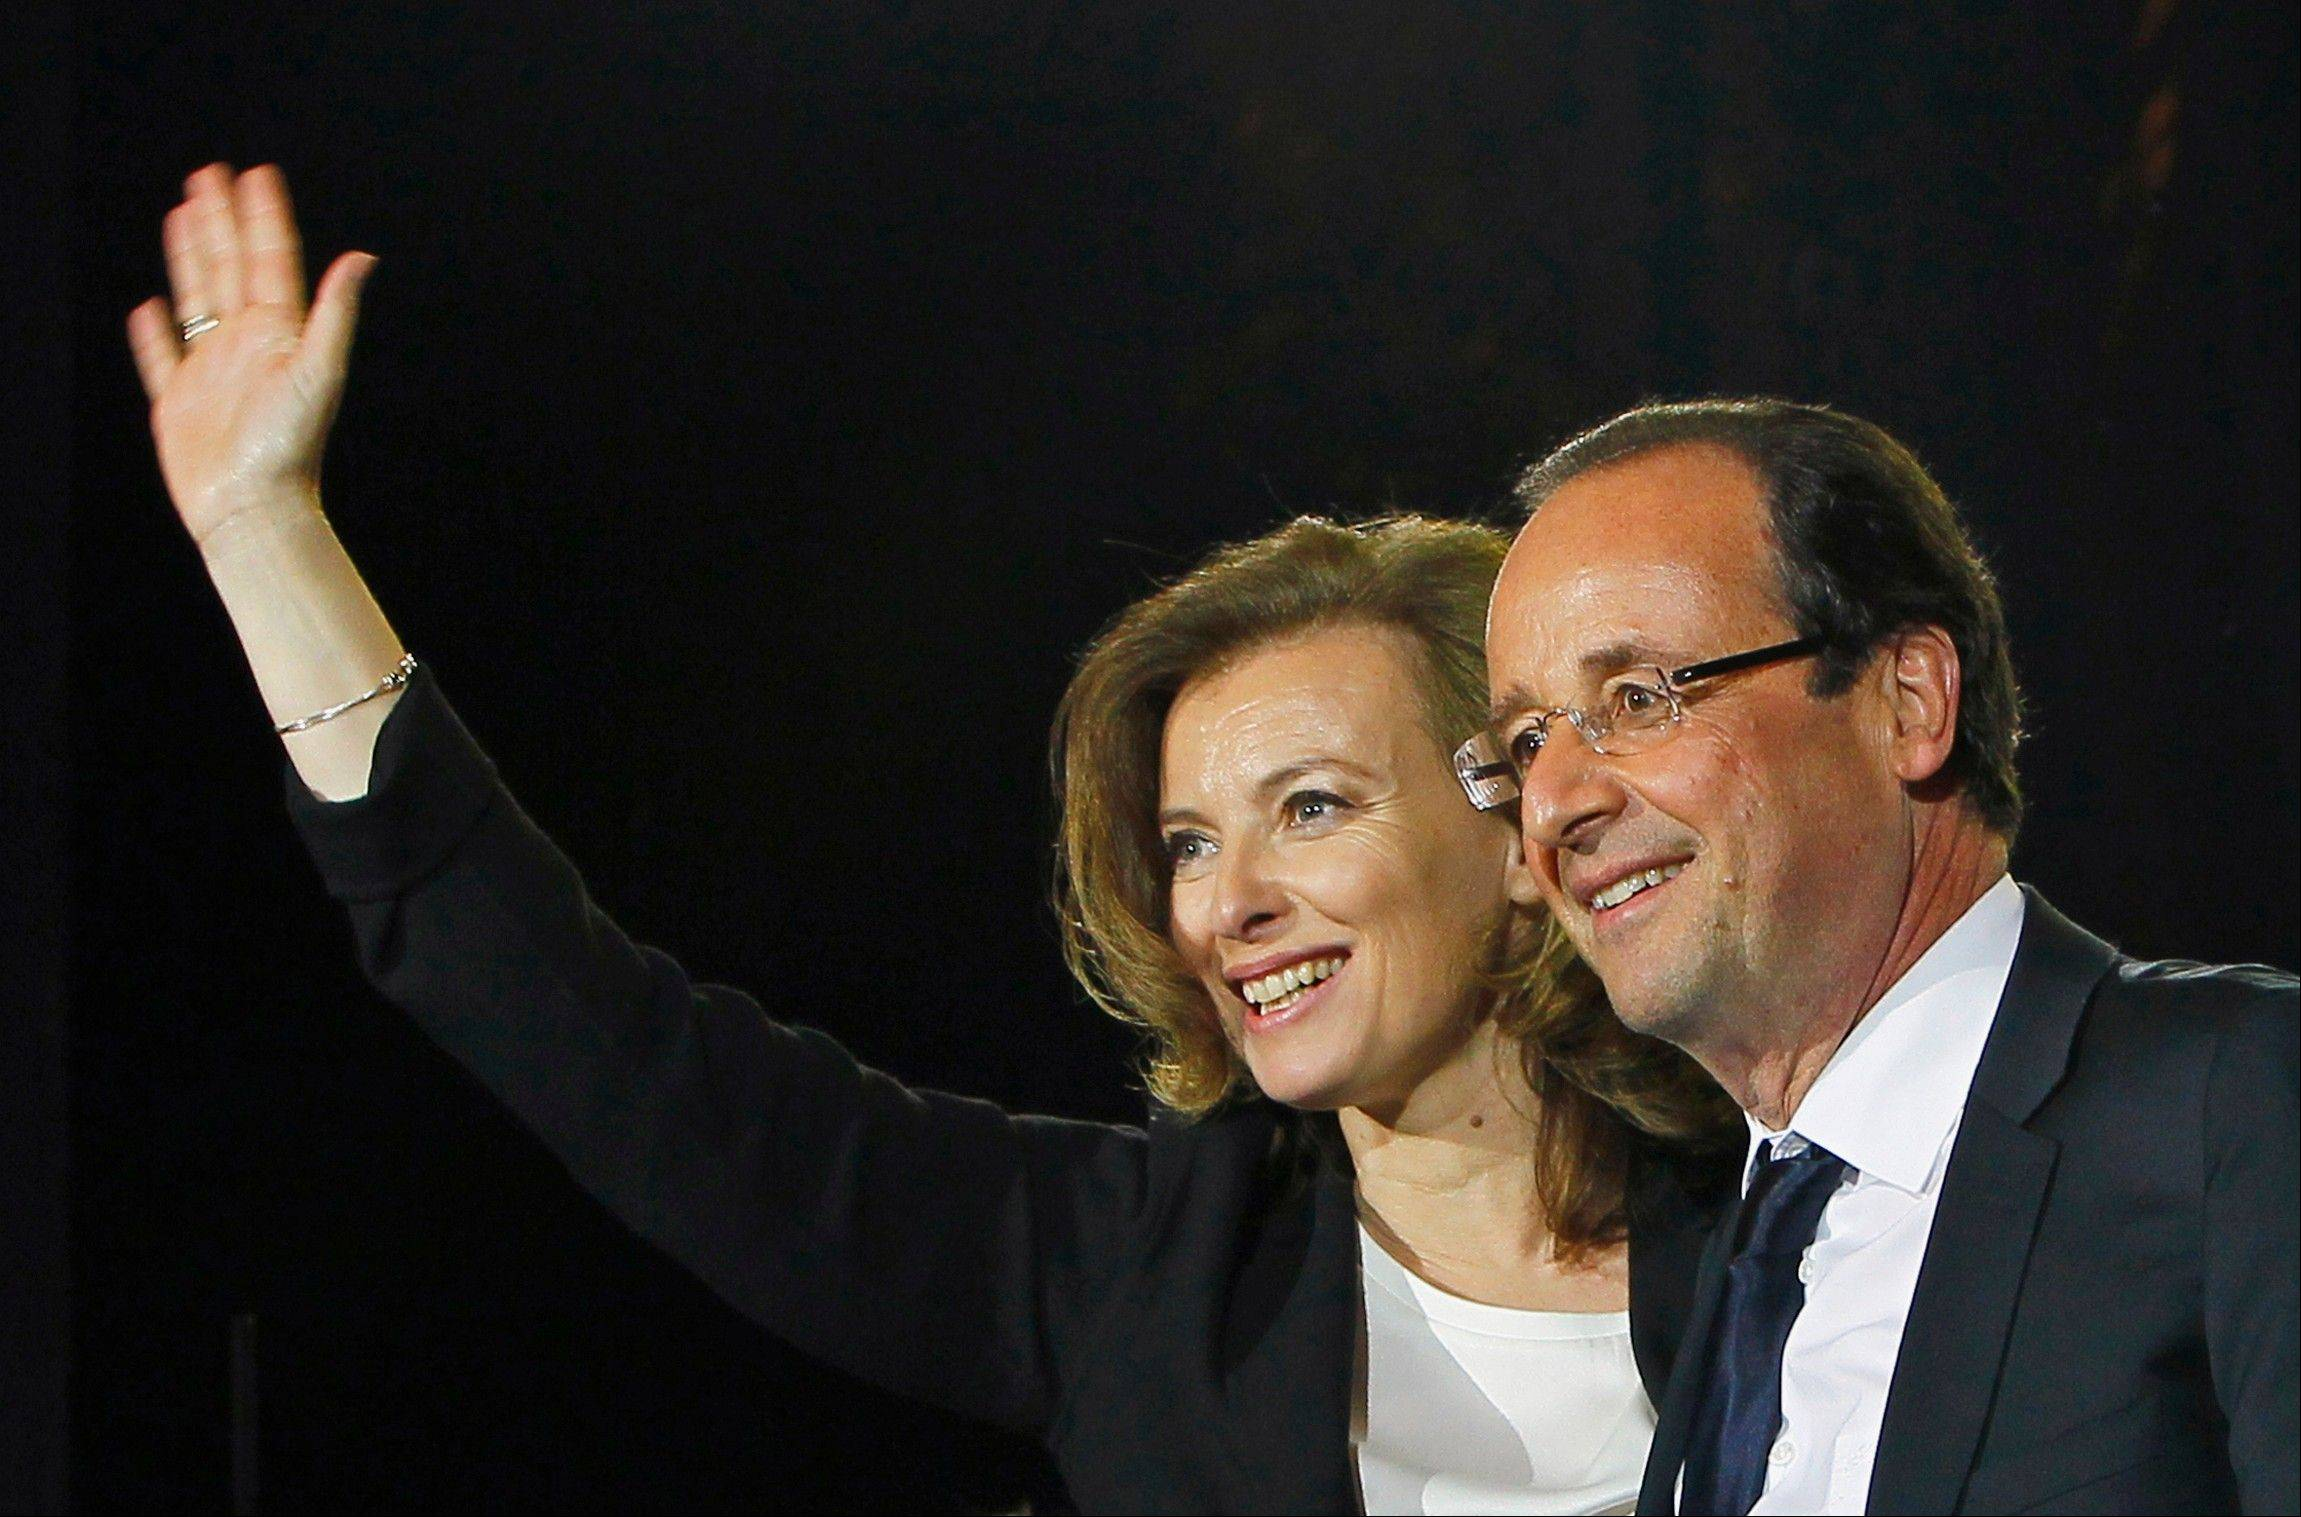 French president-elect Francois Hollande and his companion Valerie Trierweiler celebrating his election victory in Bastille Square in Paris, France.